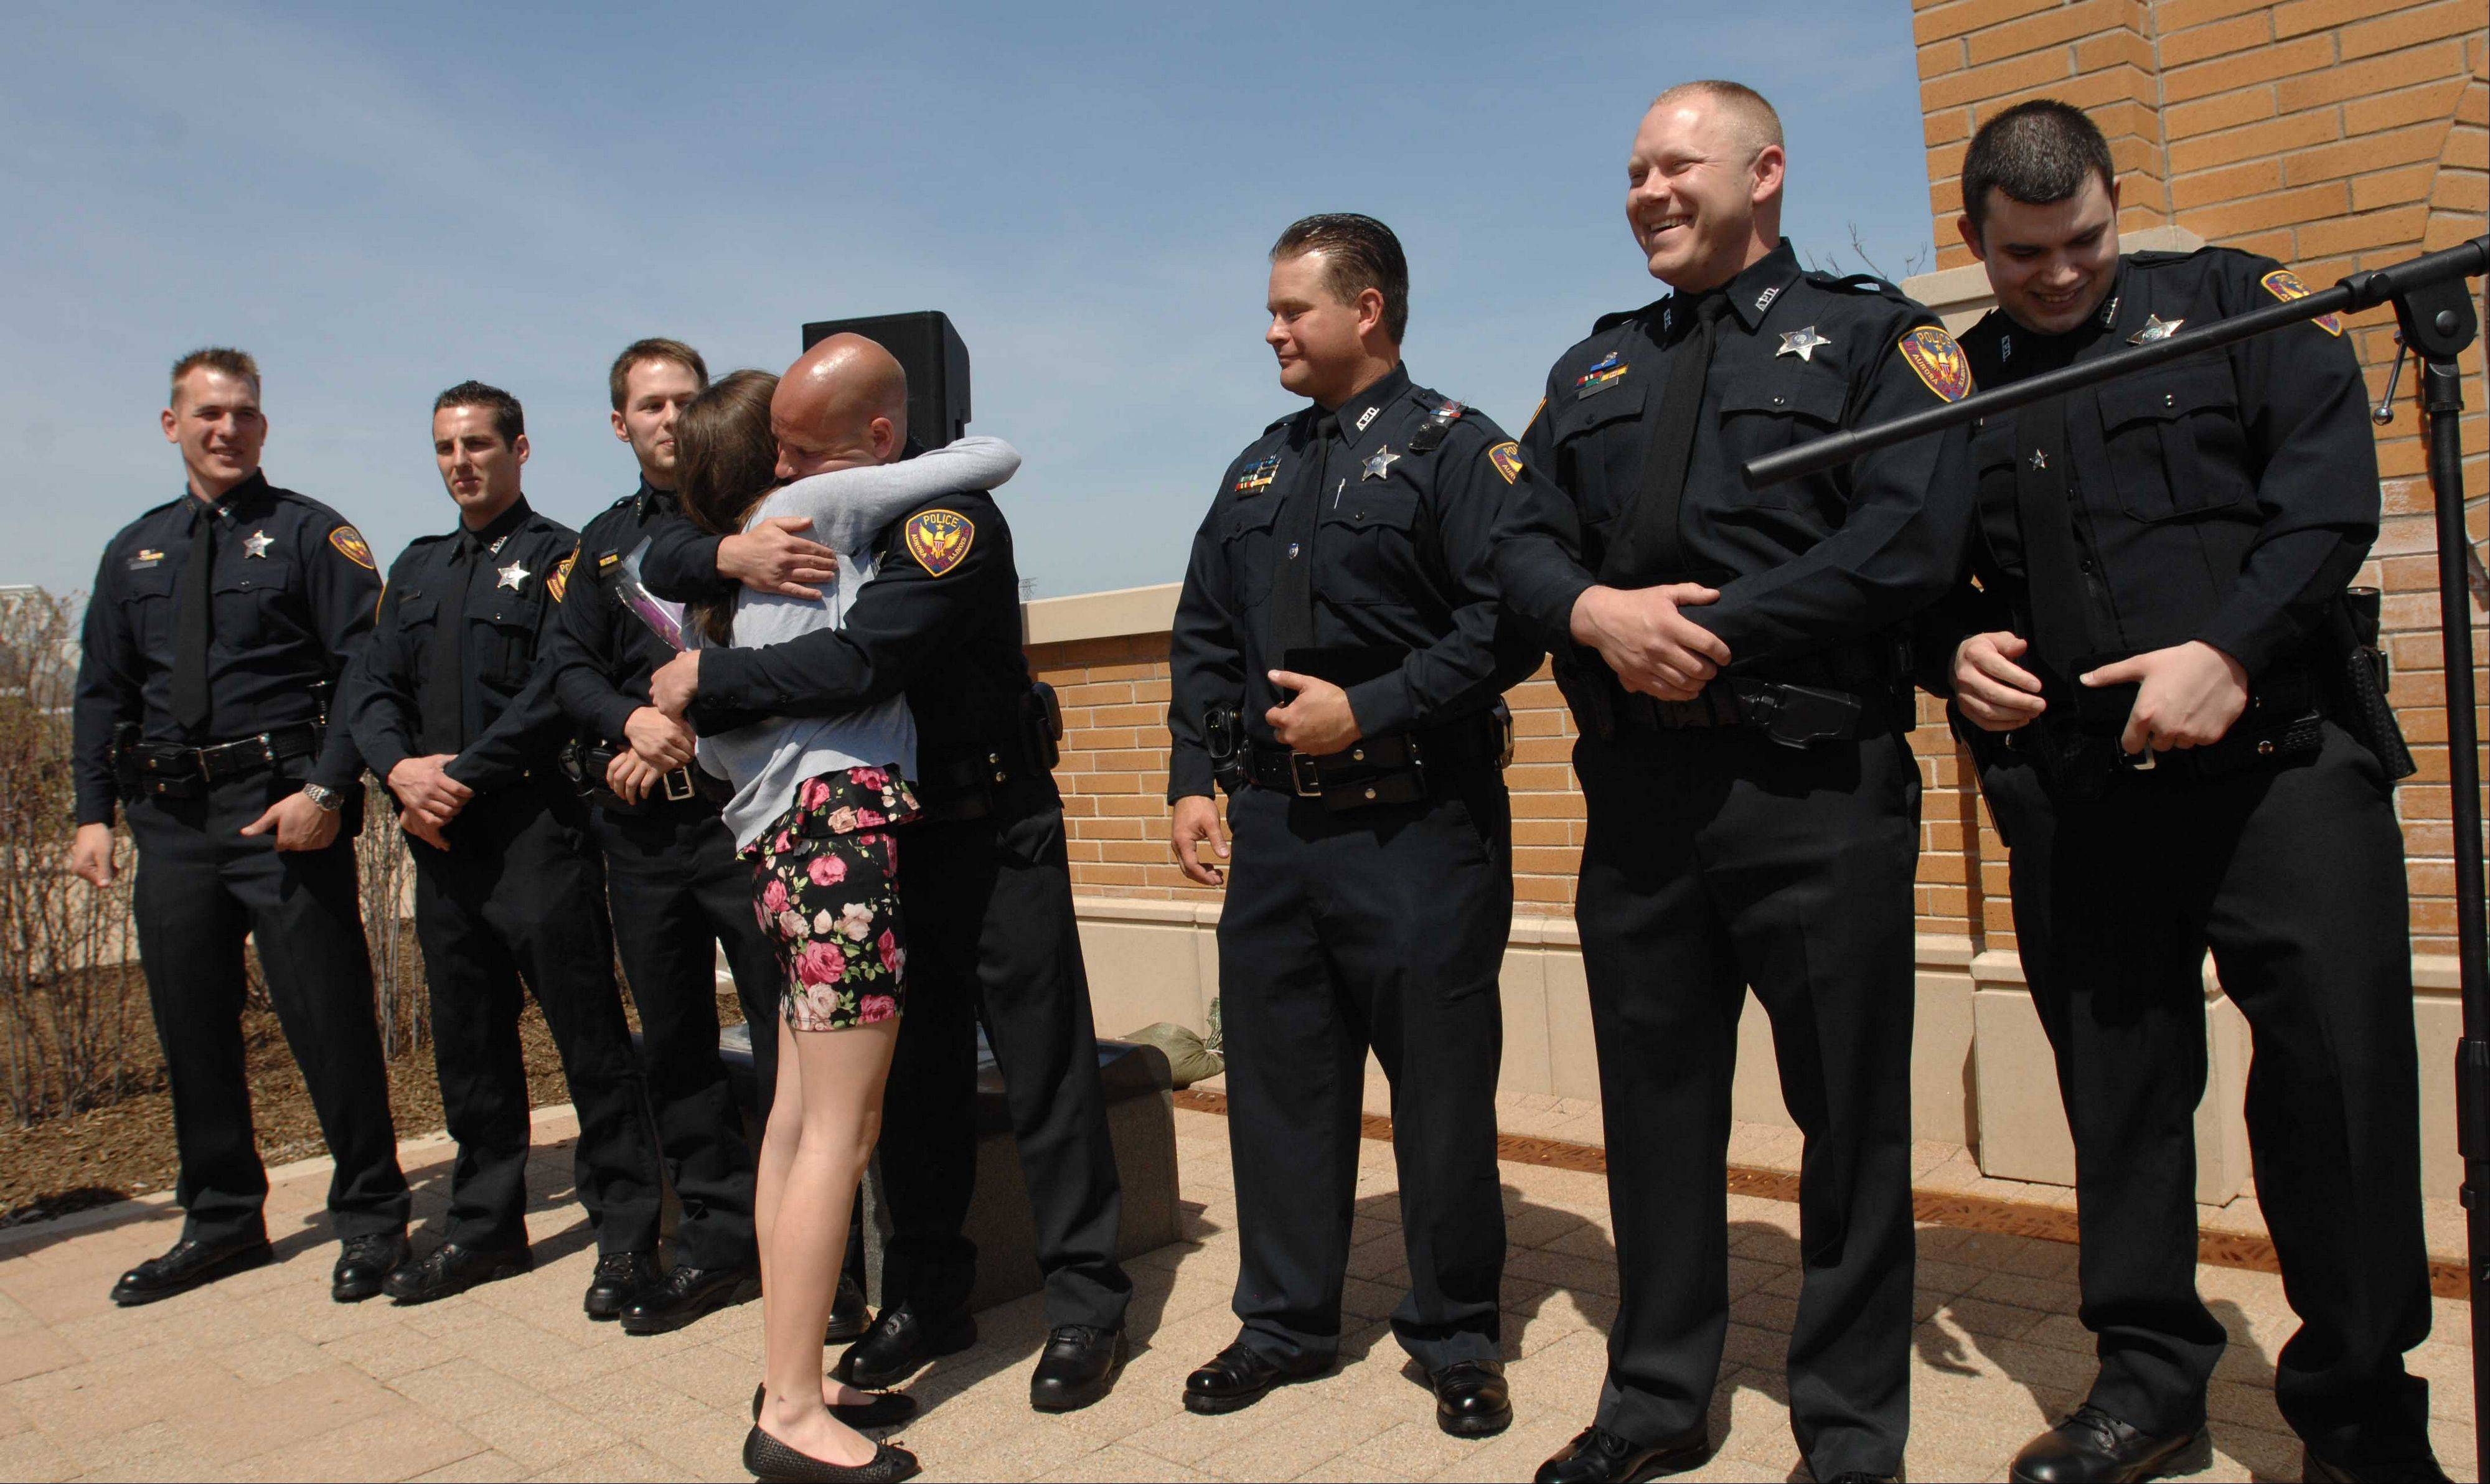 The Aurora Police Department honored seven of it�s officers, who along with six firefighters, saved the life of 14-year-old Annie Prosser who nearly drowned in March after the vehicle in which she was riding crashed into a retention pond. Edwin Doepel, left, Erik Swastek, Greg Christoffel, Nicholas Gartner, Joshua Sullivan, and Chris Coronado wait in line for a hug from Annie Prosser while she hugs Jeffrey Hahn.